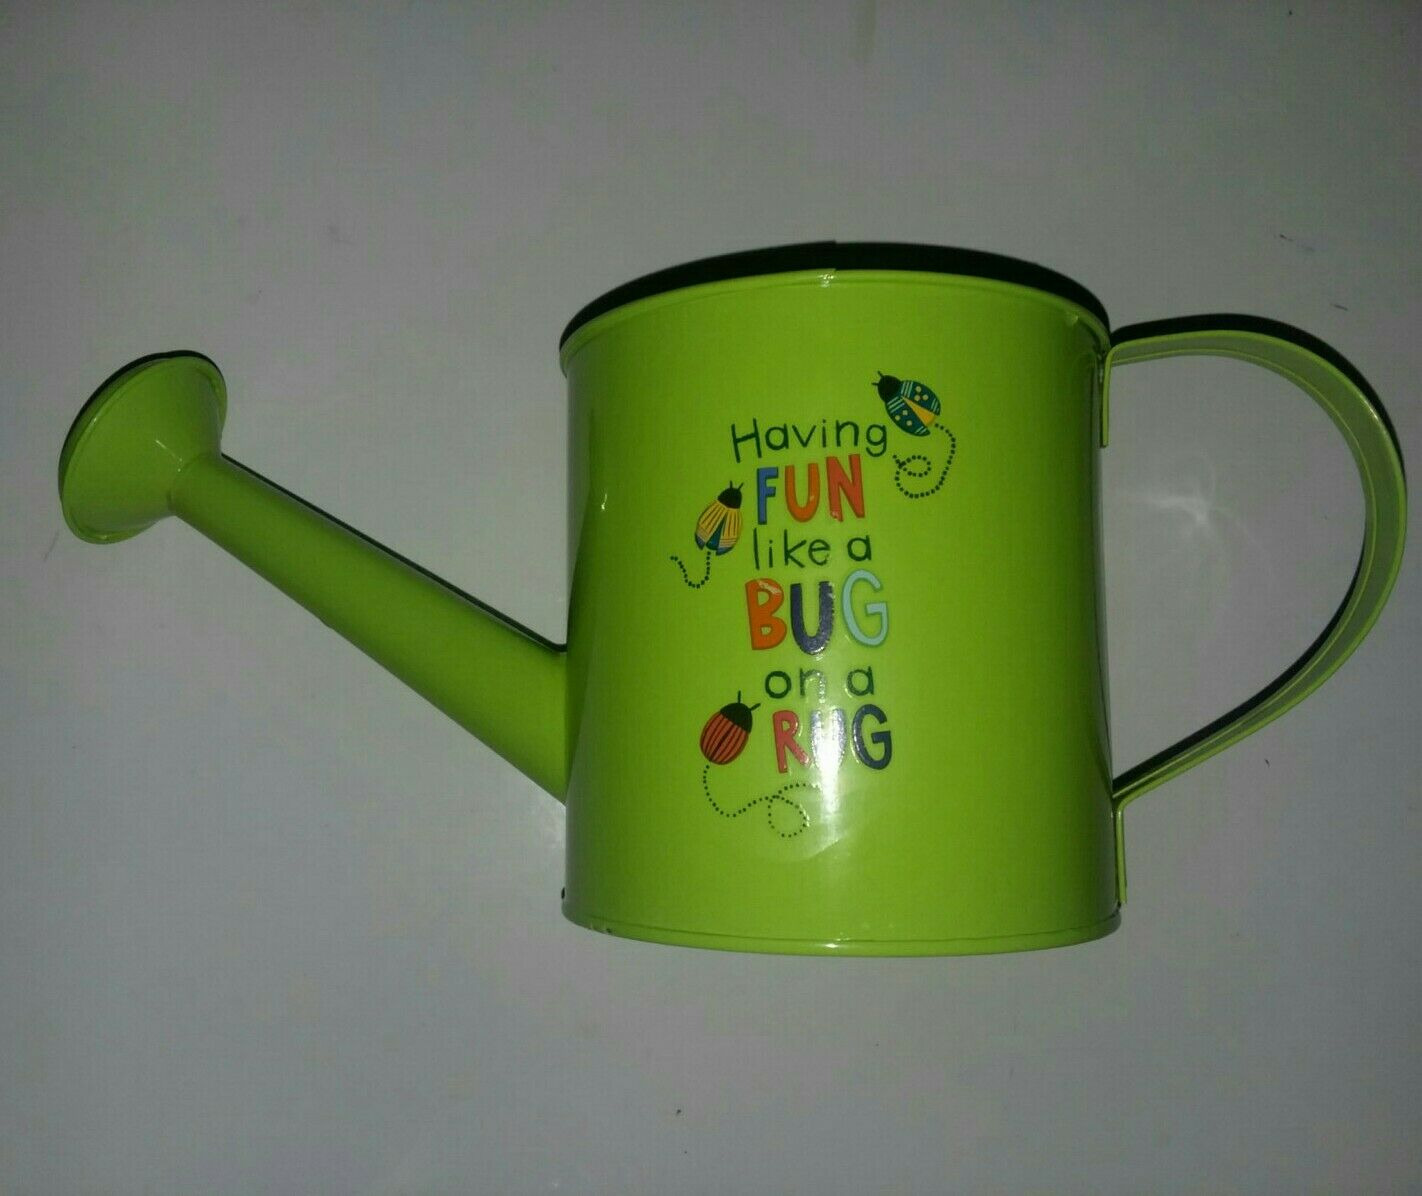 1 Liter Tin Watering Can, 1pcs Garden Bucket Tin For watering or planter. Green